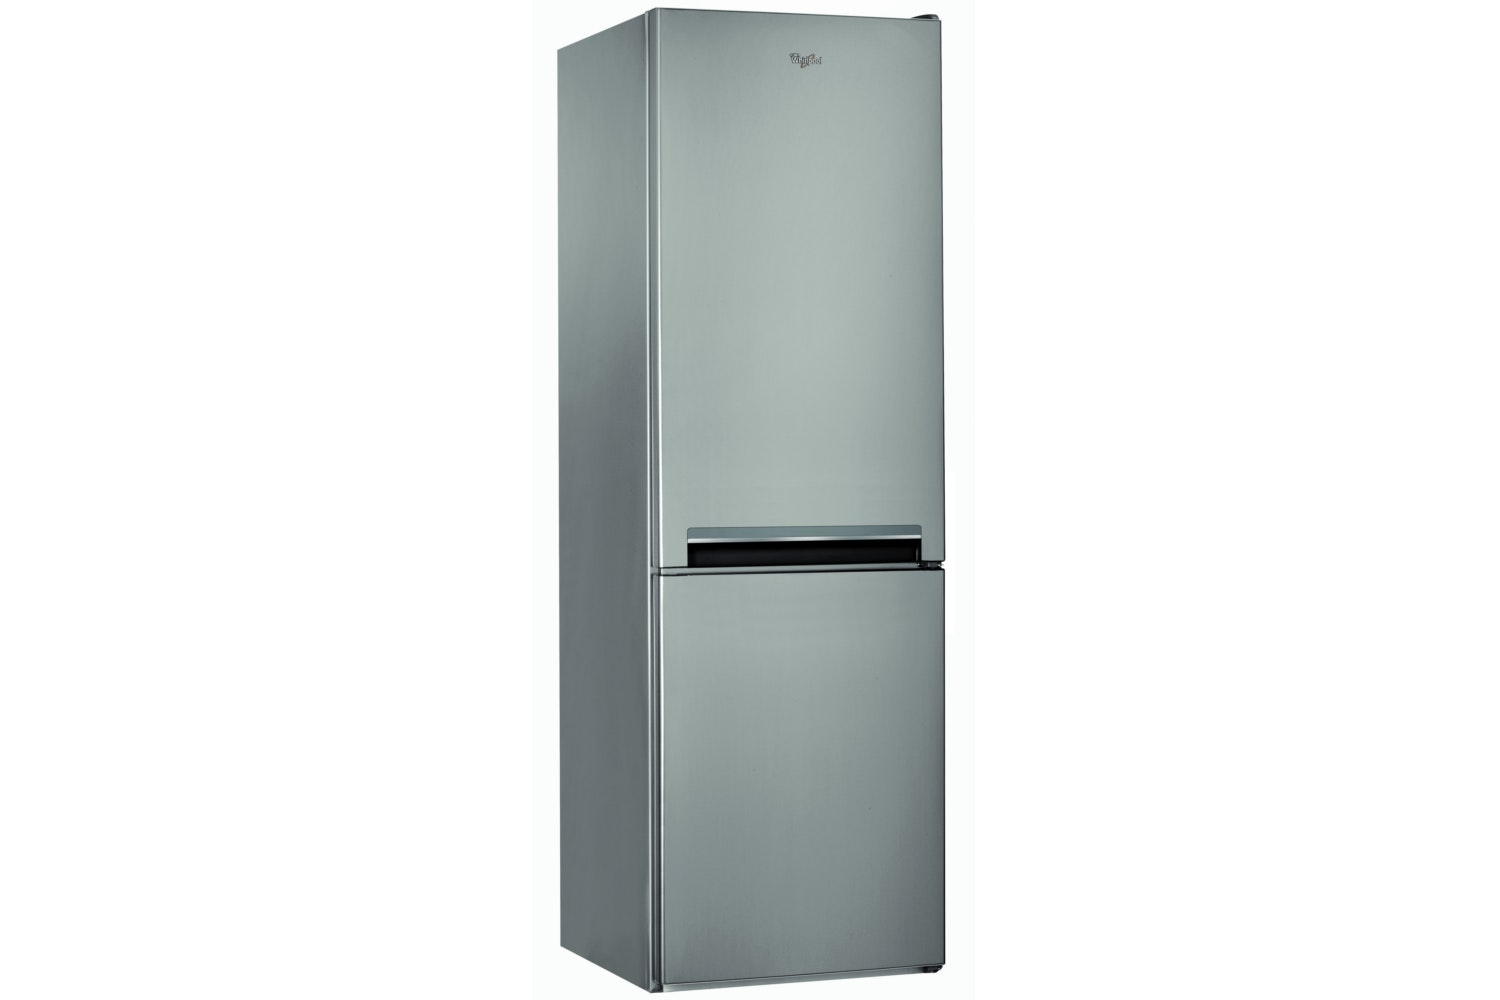 Whirlpool Freestanding Fridge Freezer | BSNF8101OX